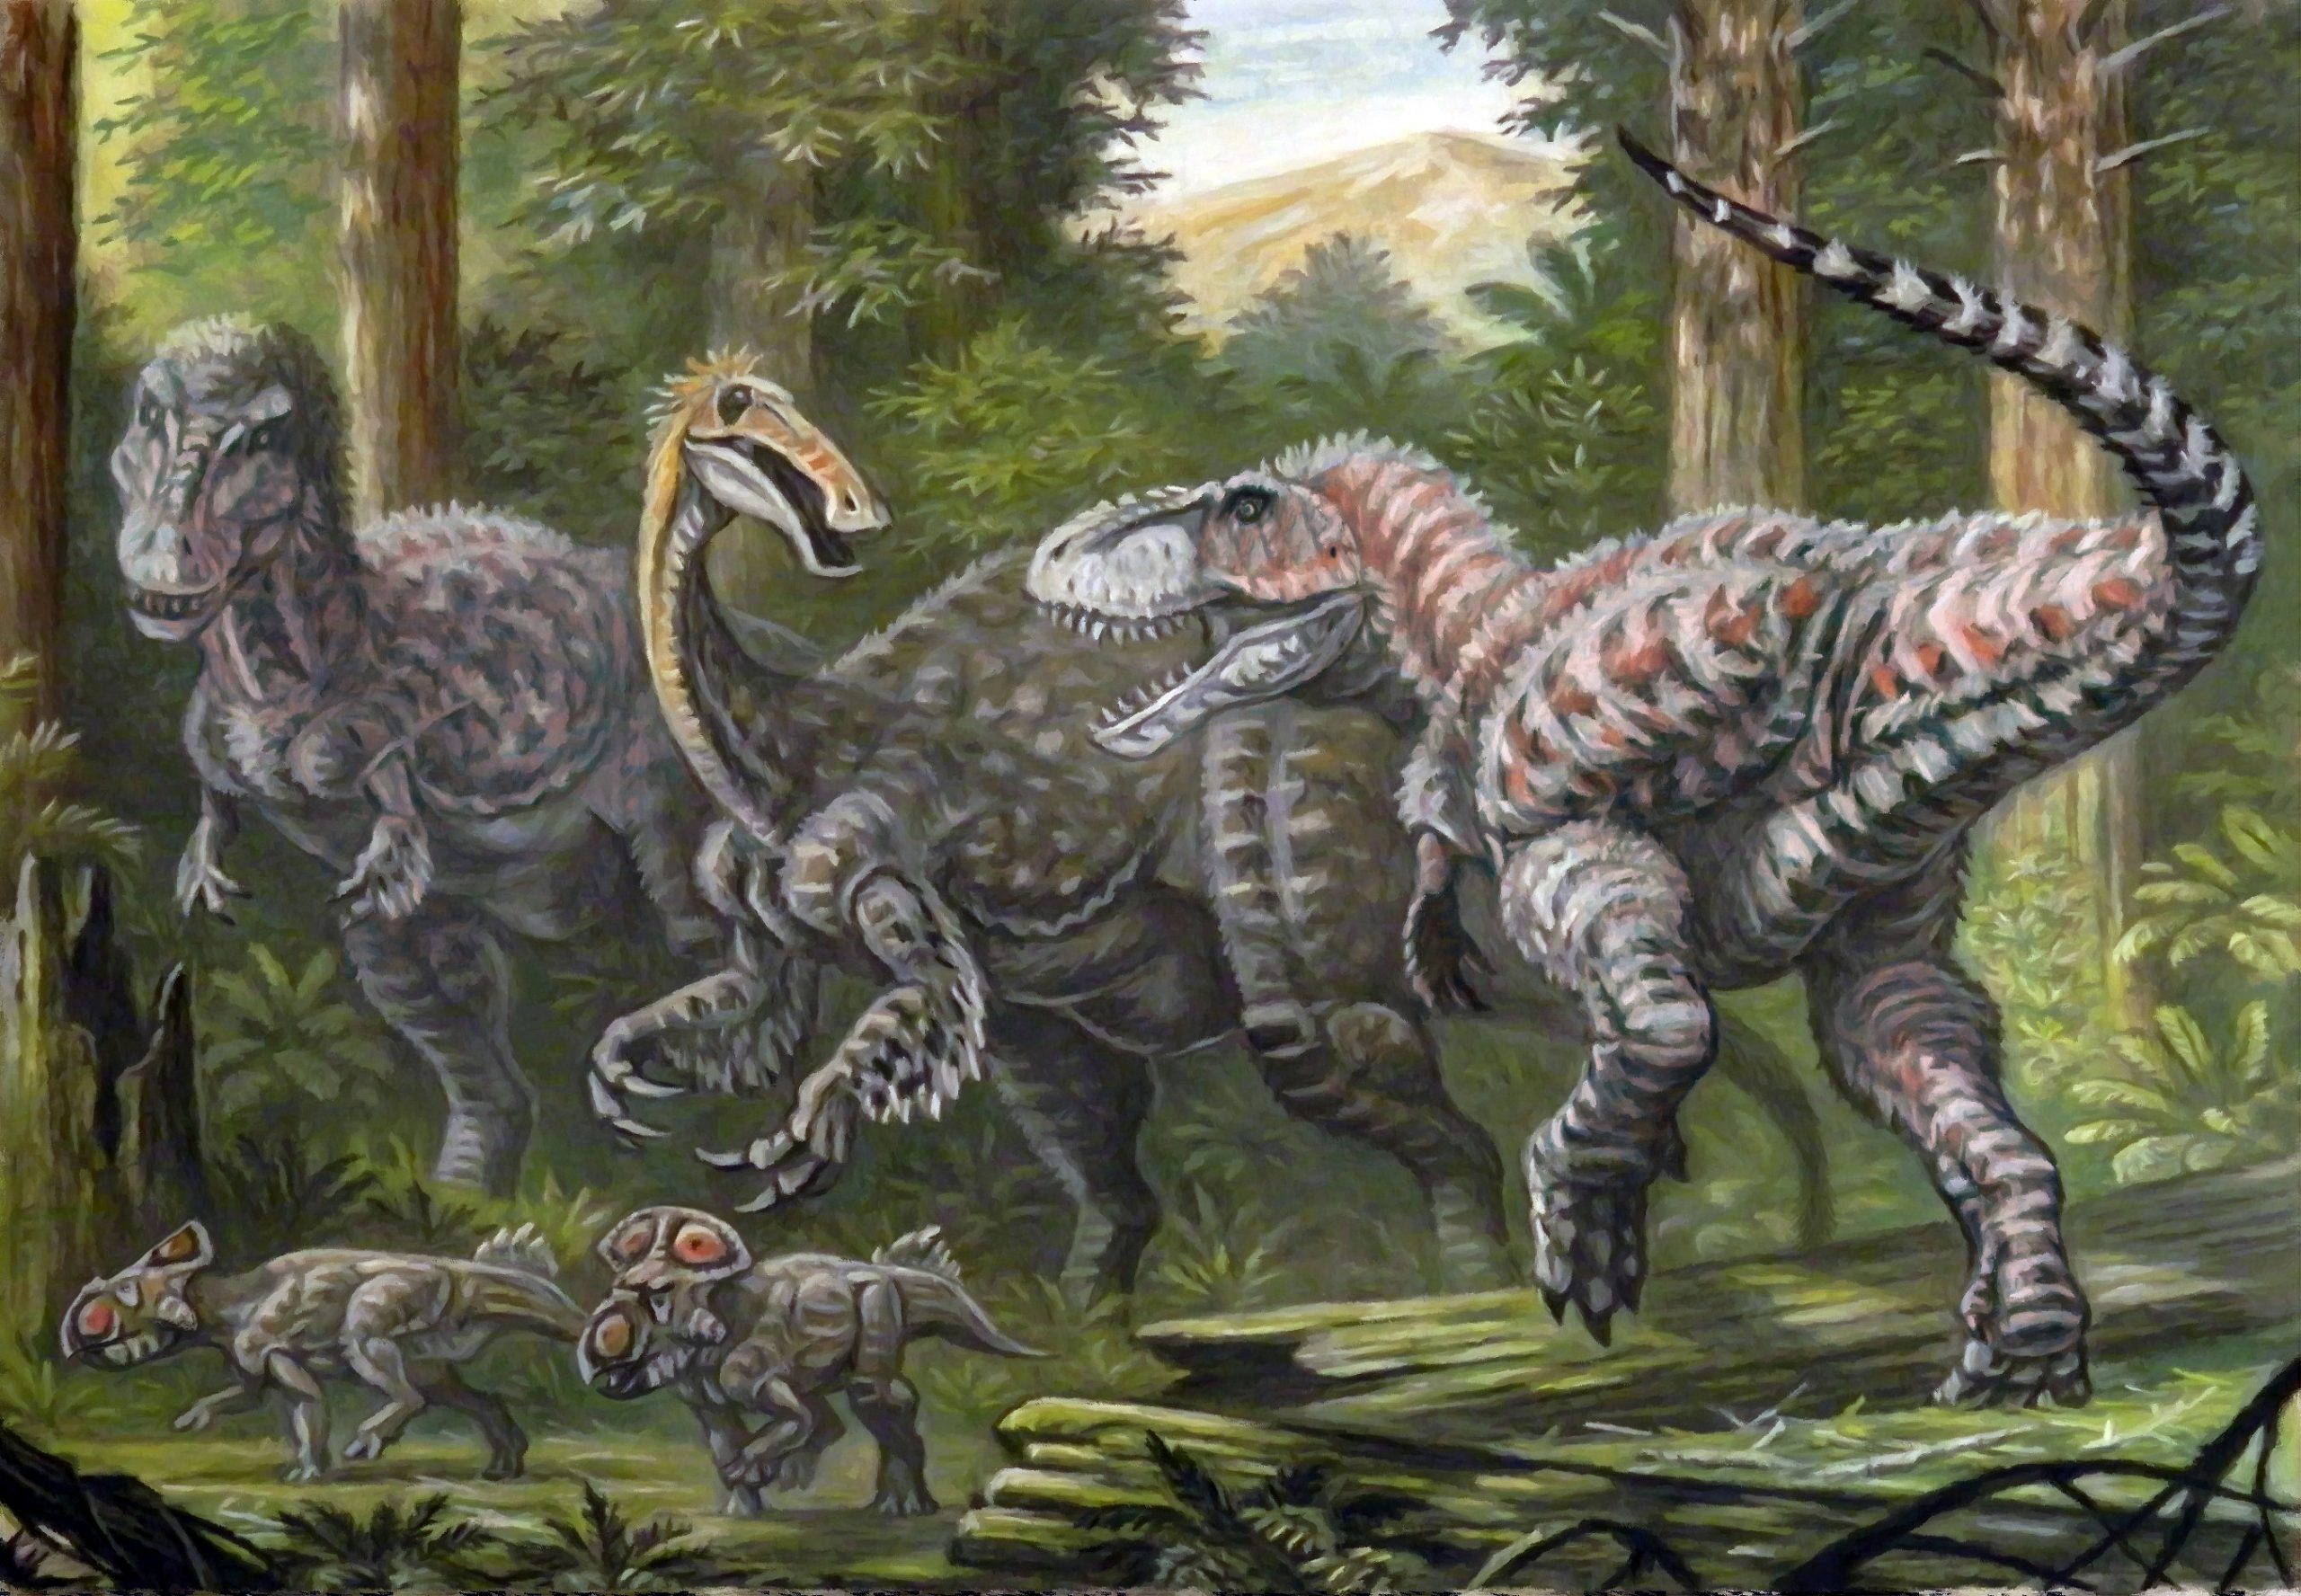 a feathered dinosaur with the horrible hand and other dinosaurs